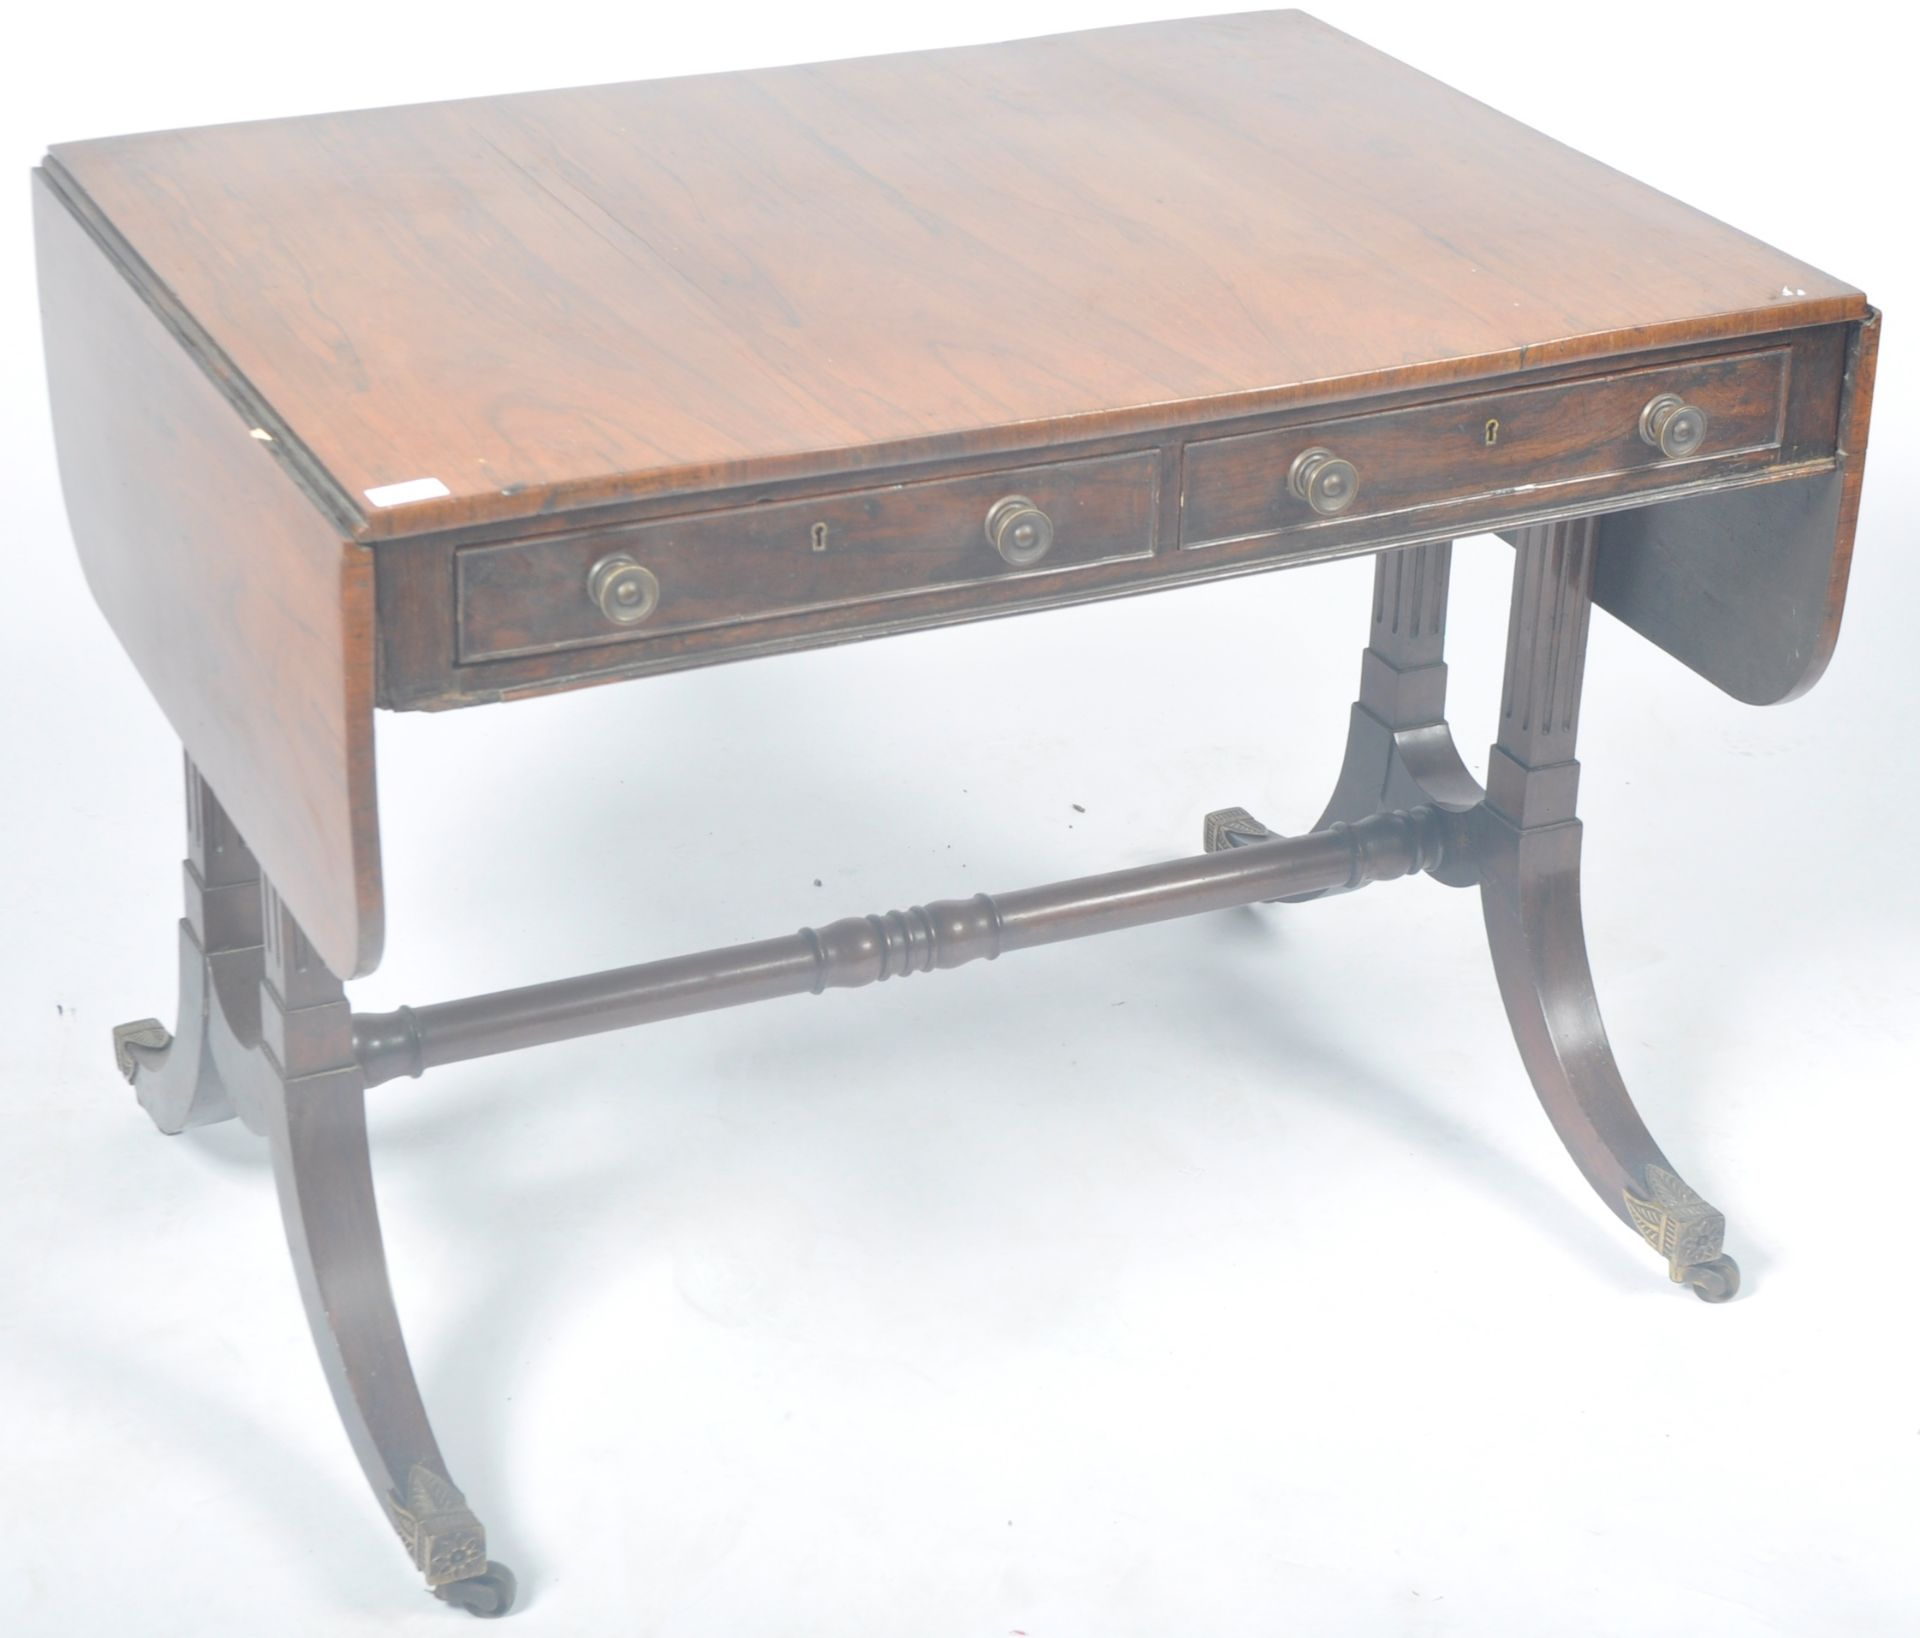 ANTIQUE ROSEWOOD REGENCY SOFA TABLE RETAILED BY HARRIS OF LONDON - Image 3 of 10